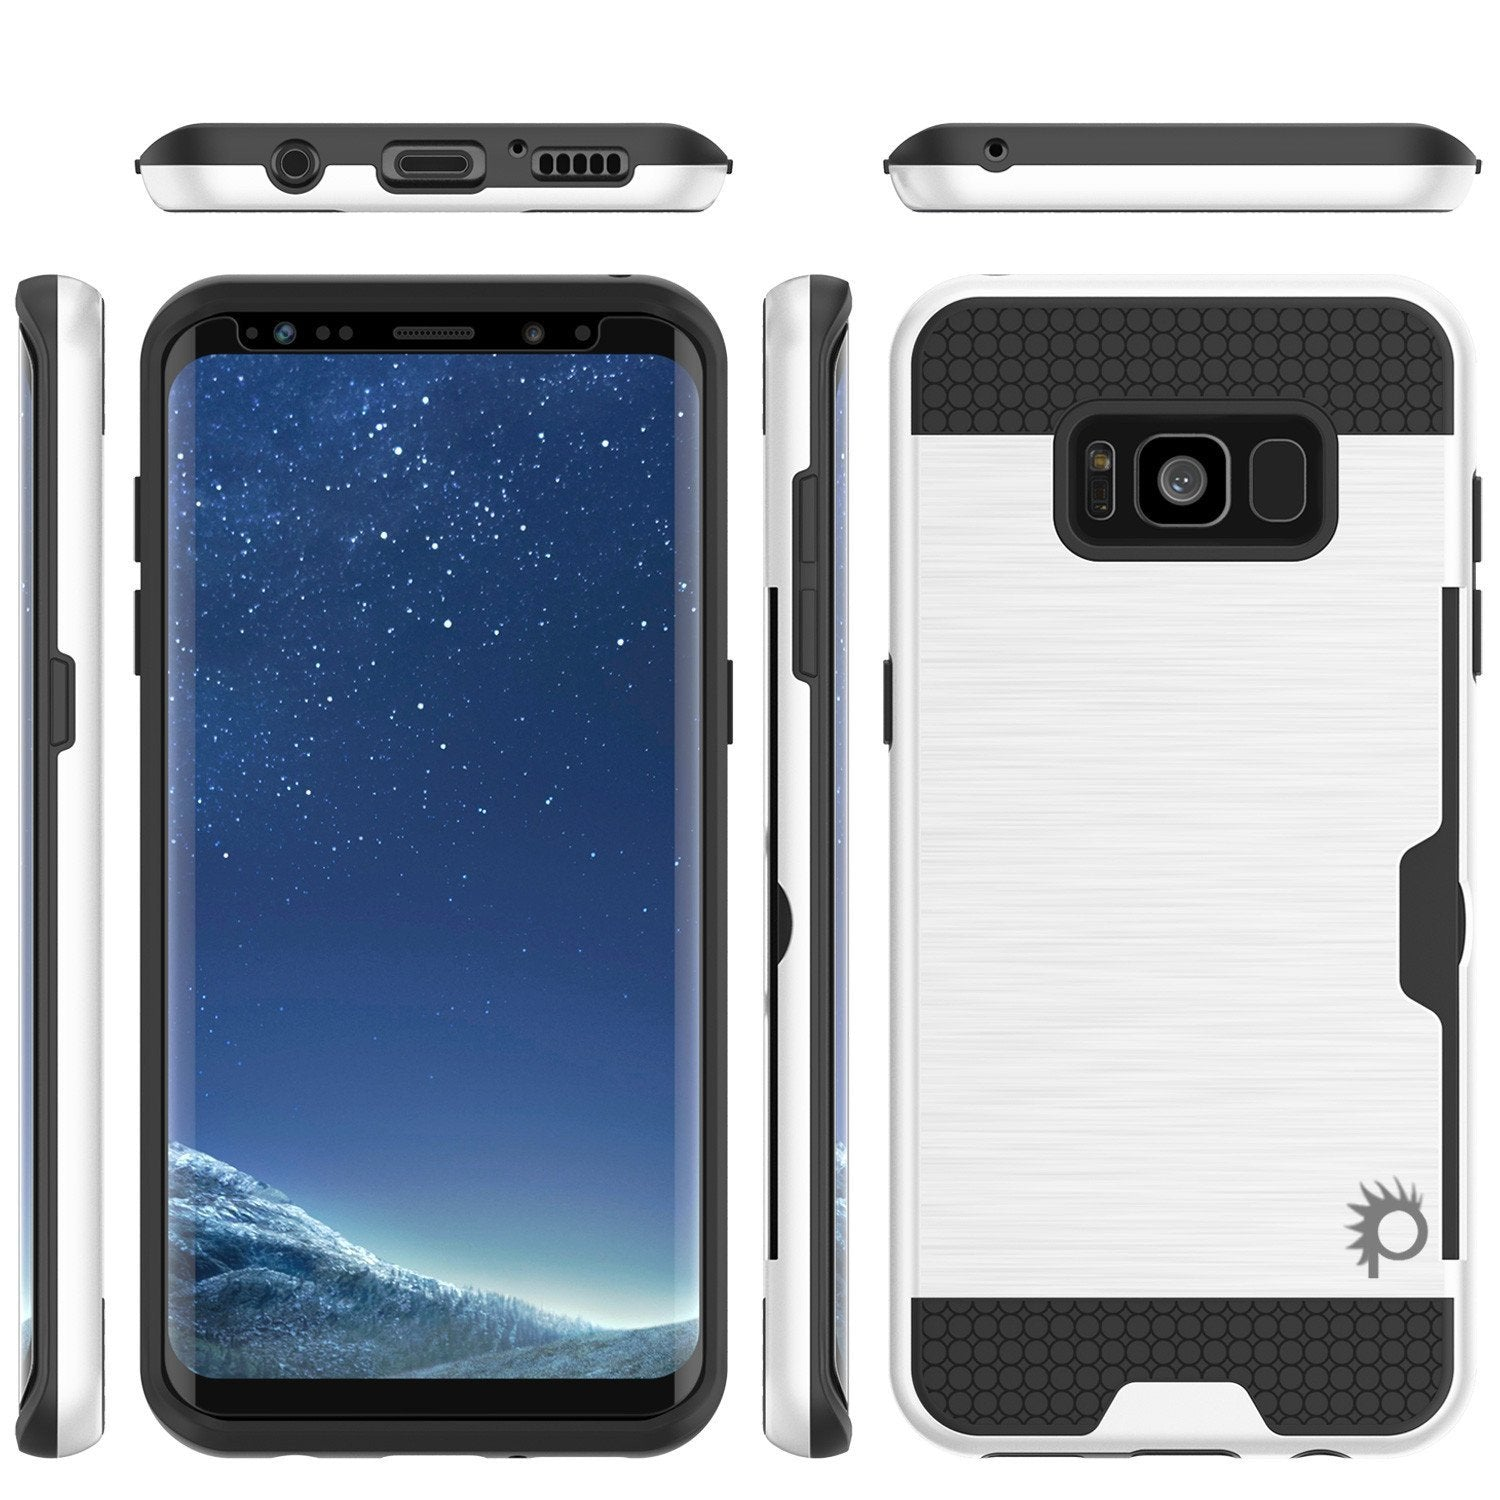 Galaxy S8 Case, PUNKcase [SLOT Series] Dual-Layer Armor Cover w/Integrated Anti-Shock System, Credit Card Slot & Screen Protector [White]